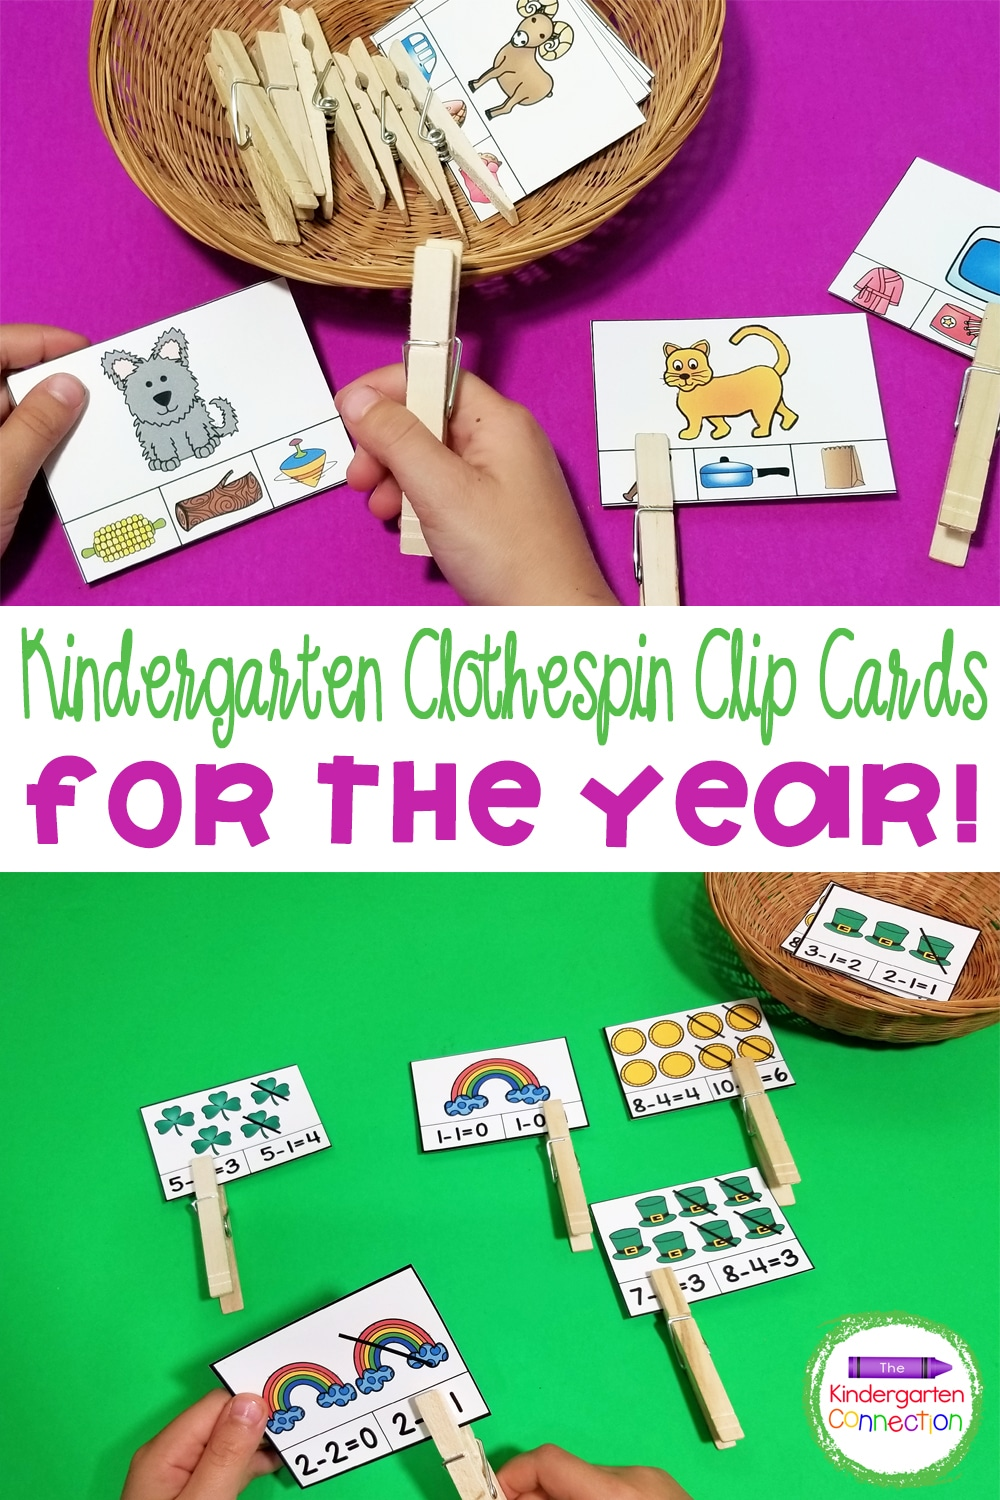 This Math and Literacy Clip Cards for Kindergarten Bundle includes hands-on clip cards with fun, seasonal themes for the entire year!